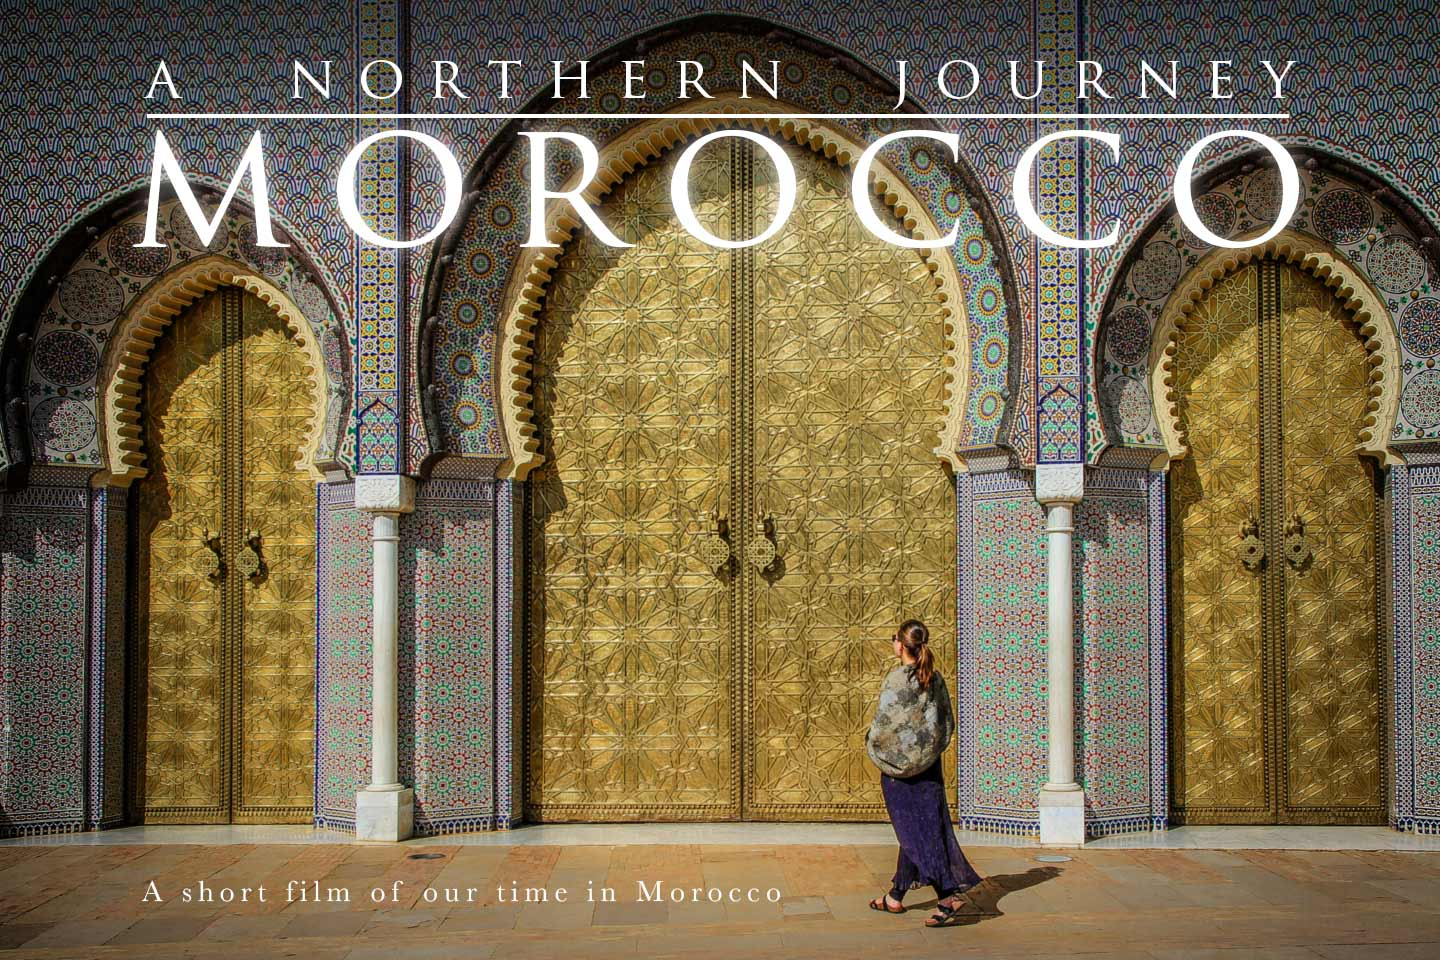 Morocco video link